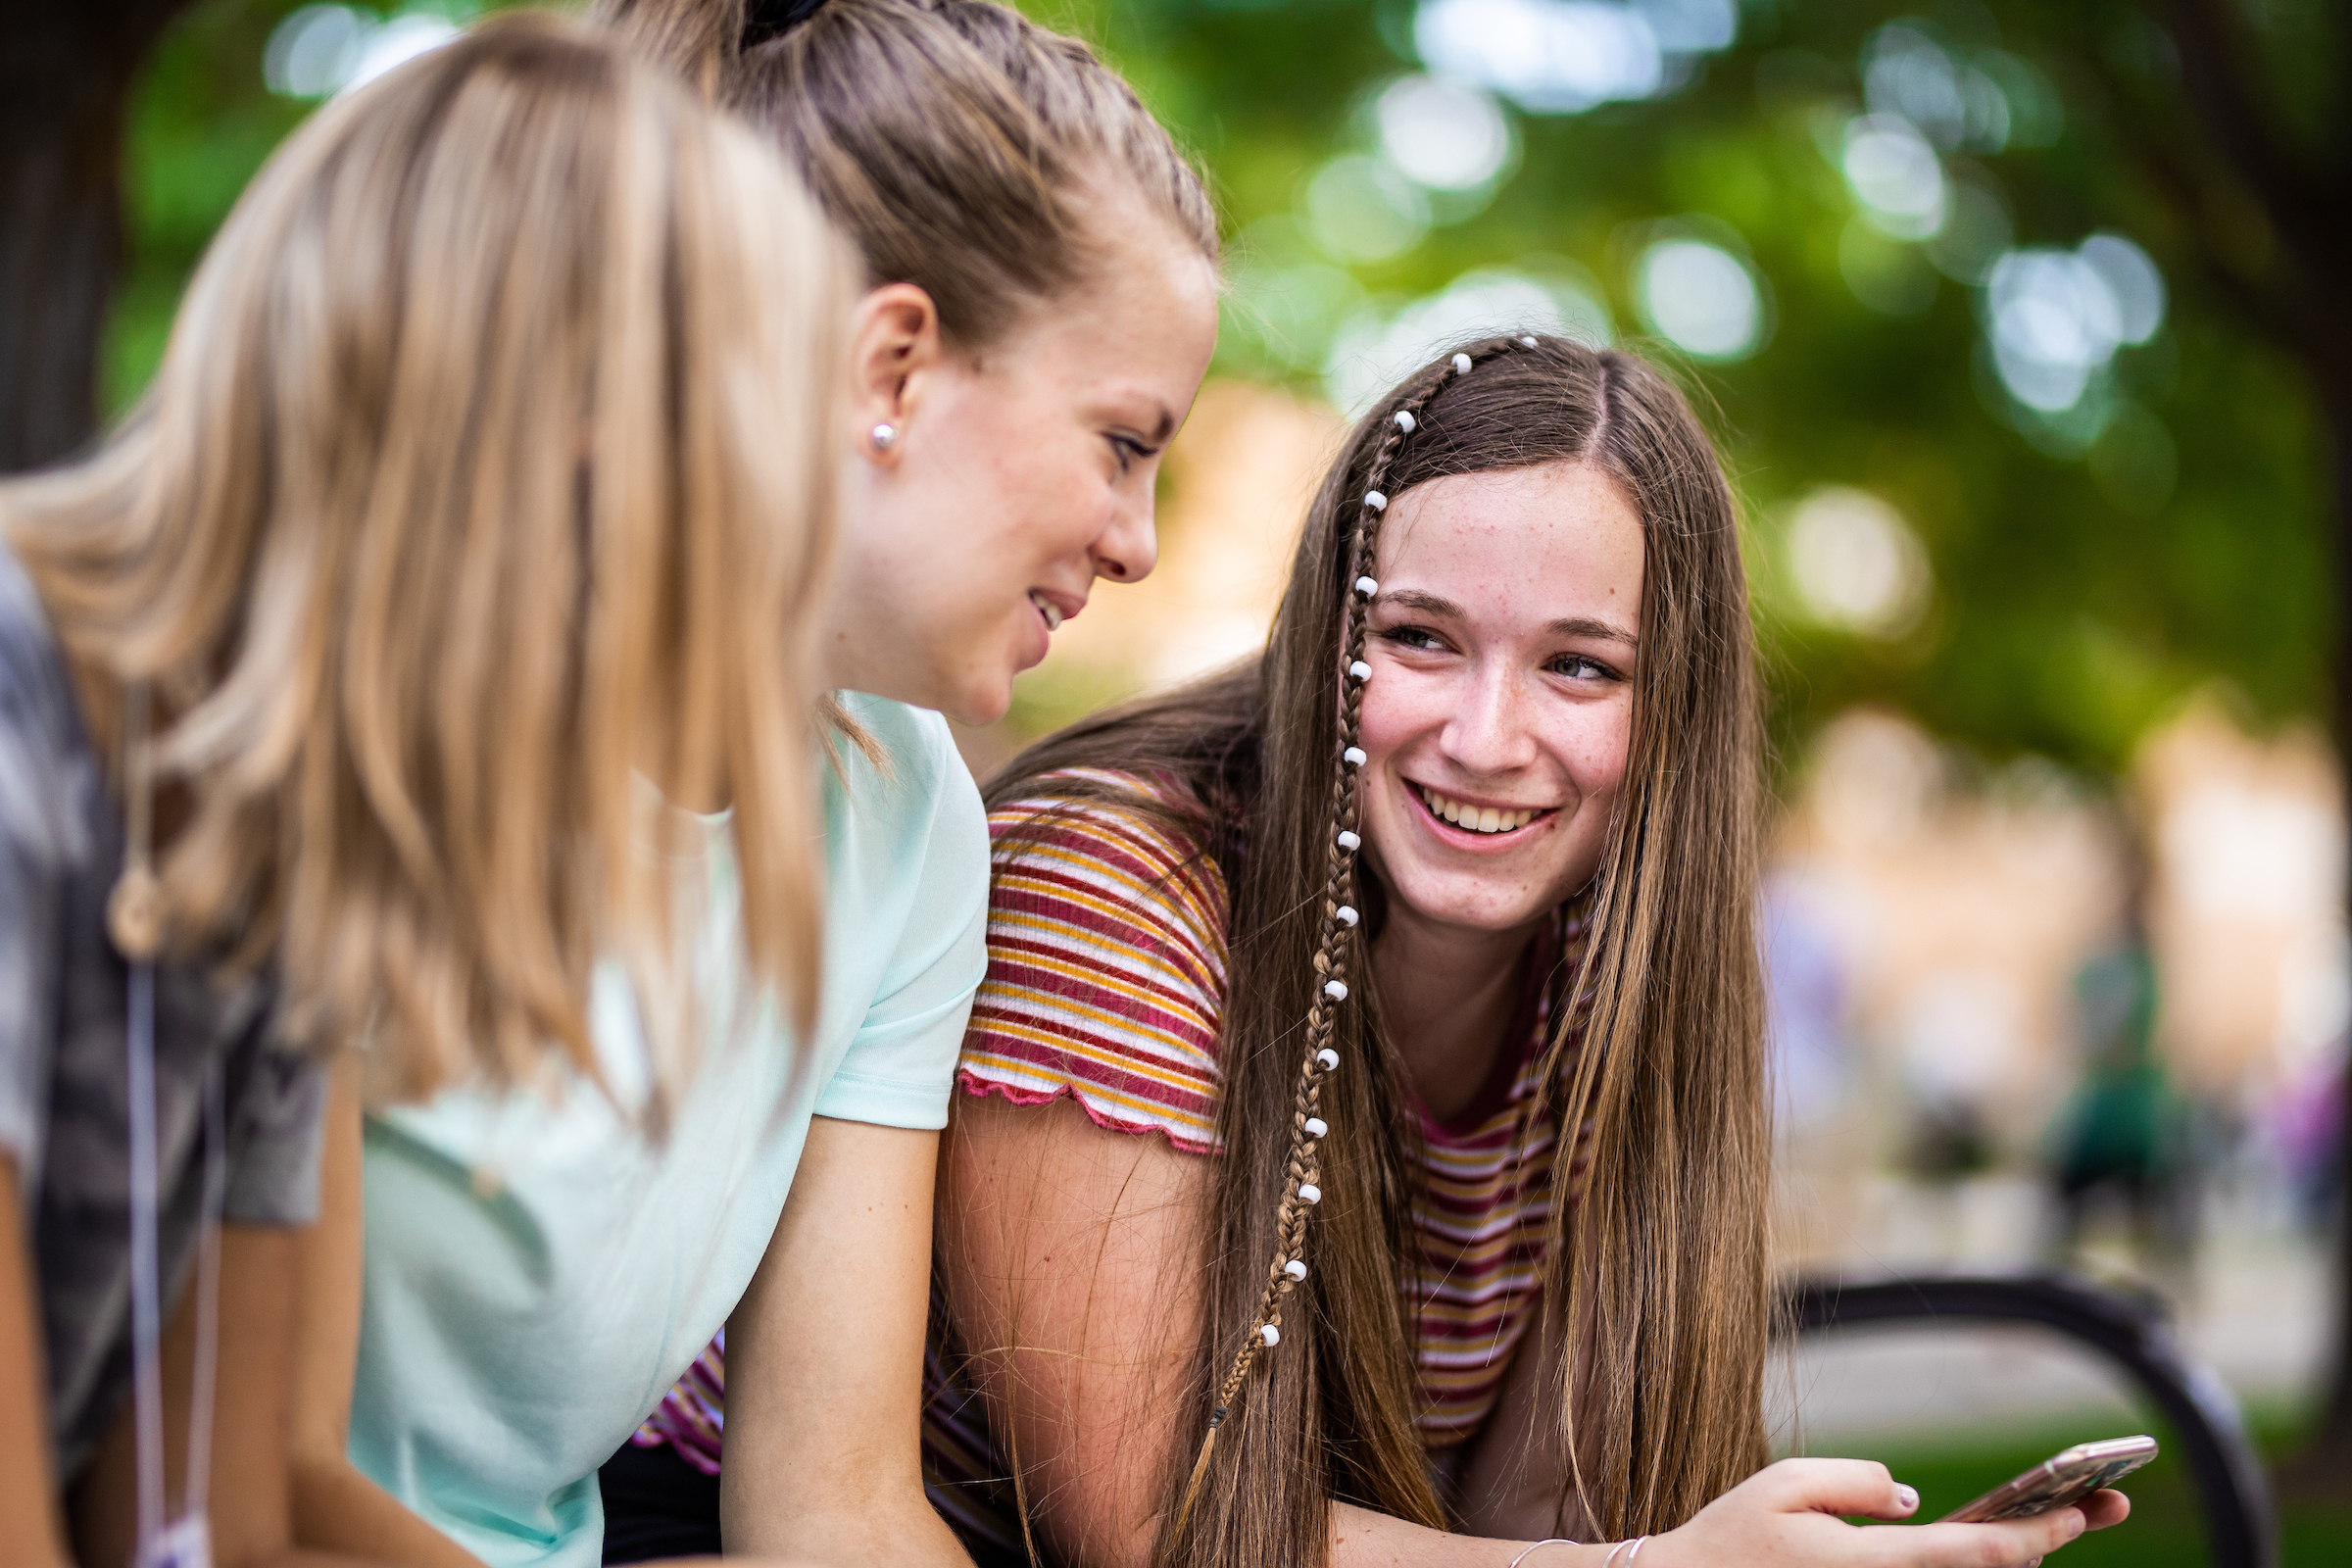 Some young women socialize between sessions during BYU Education Week on Aug. 22, 2019, on the BYU campus in Provo, Utah. The annual event is open to anyone age 14 and older.